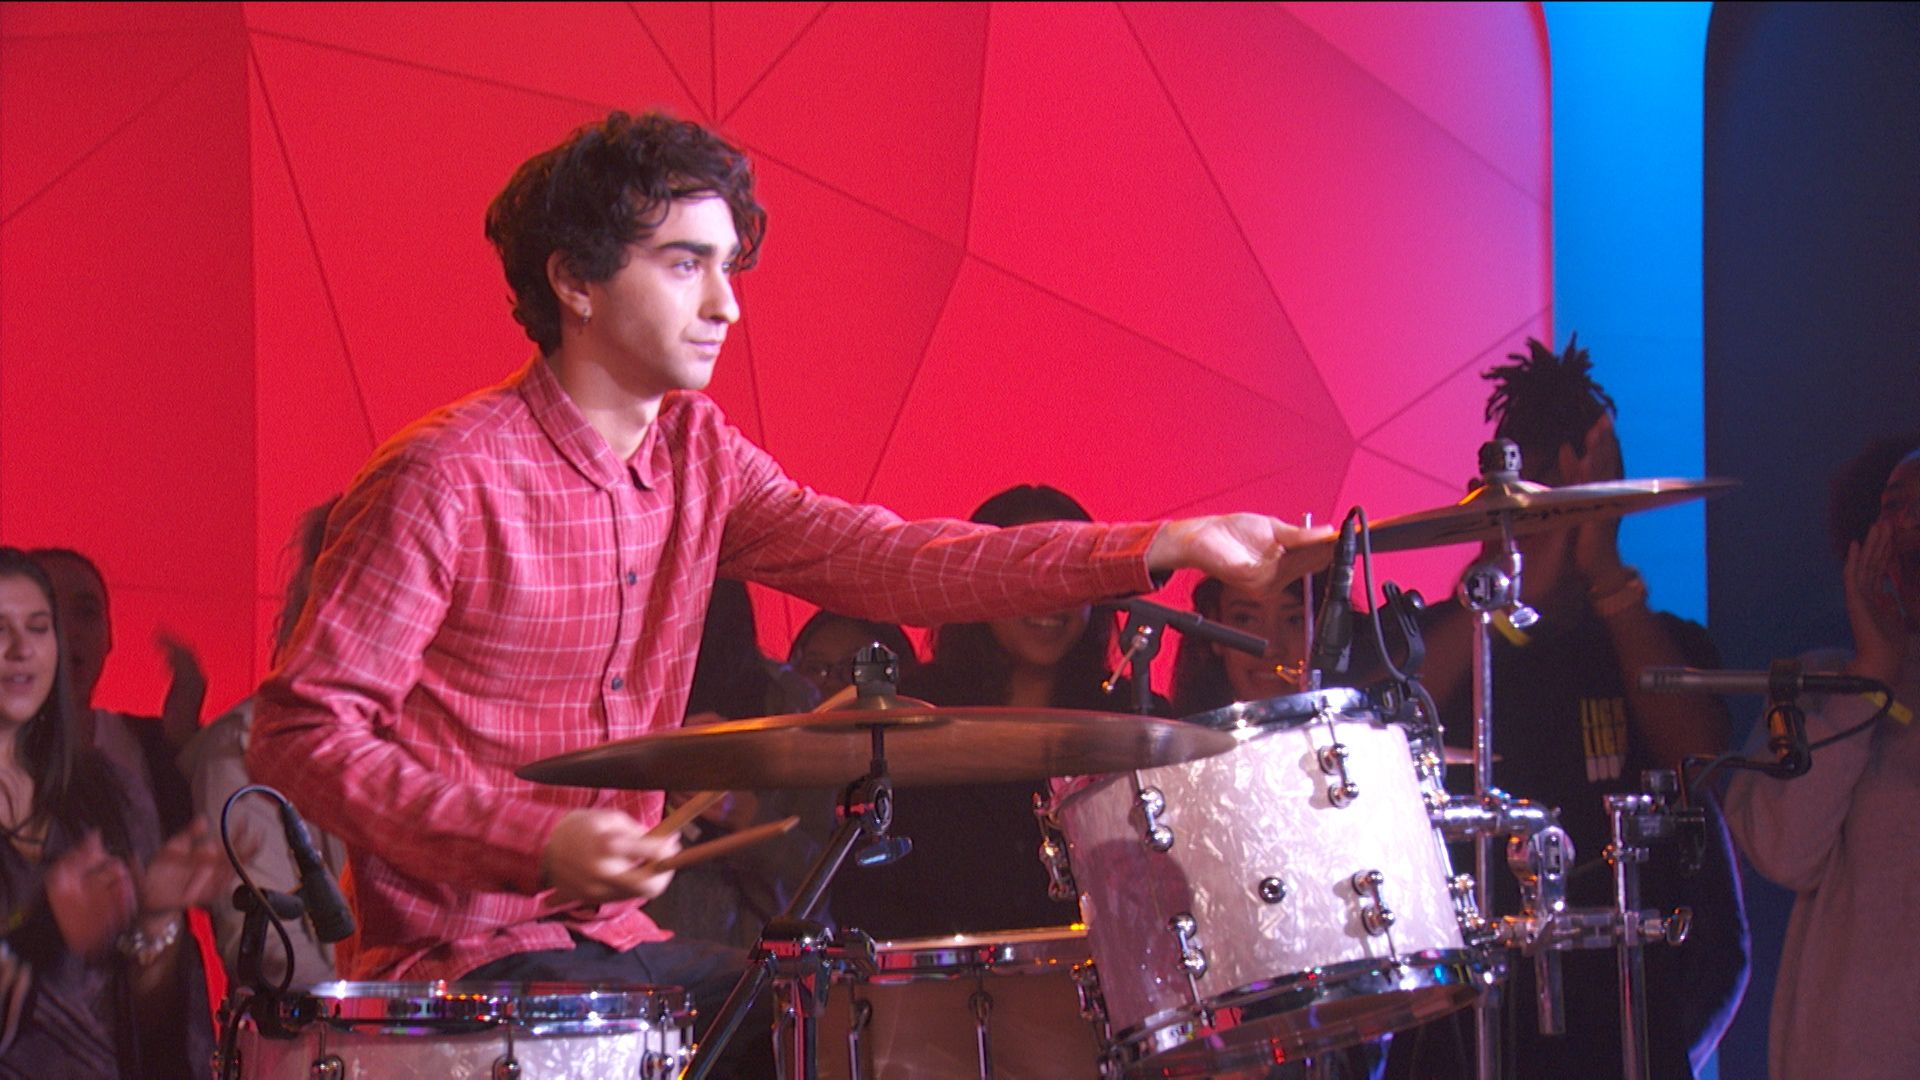 Alex Wolff and DC Young Fly Play Beat Down   TRL Top 10 Video 1920x1080